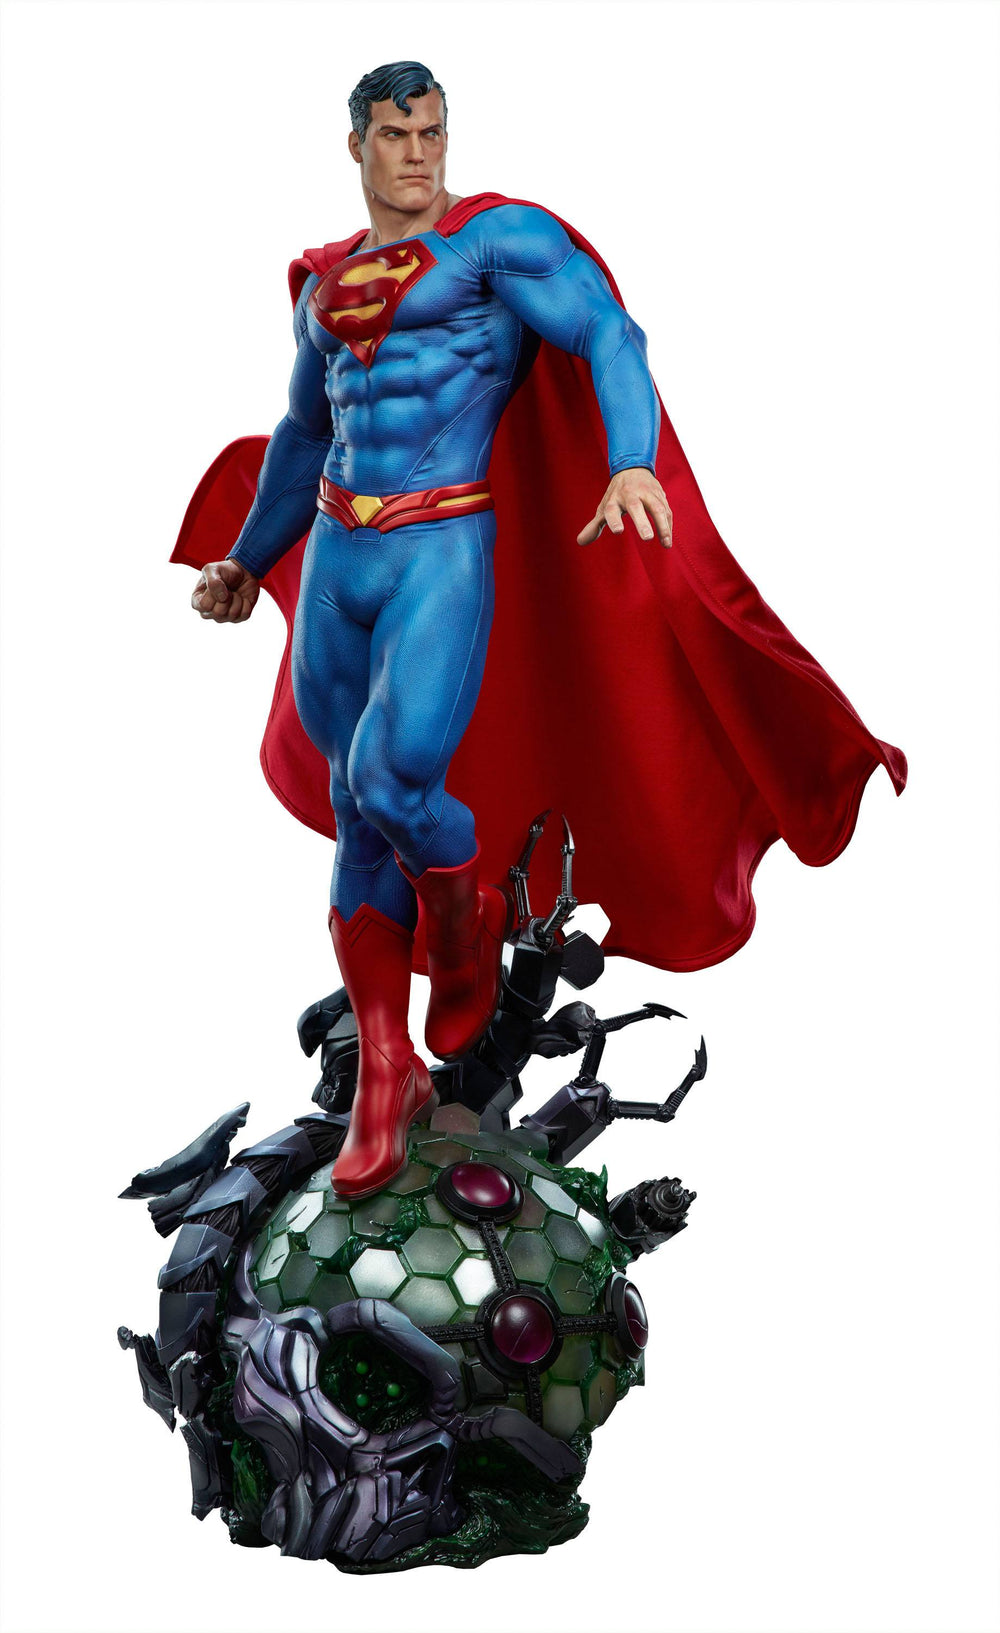 Sideshow Collectibles DC Comics Superman Premium Format Figure 1/4 Statue